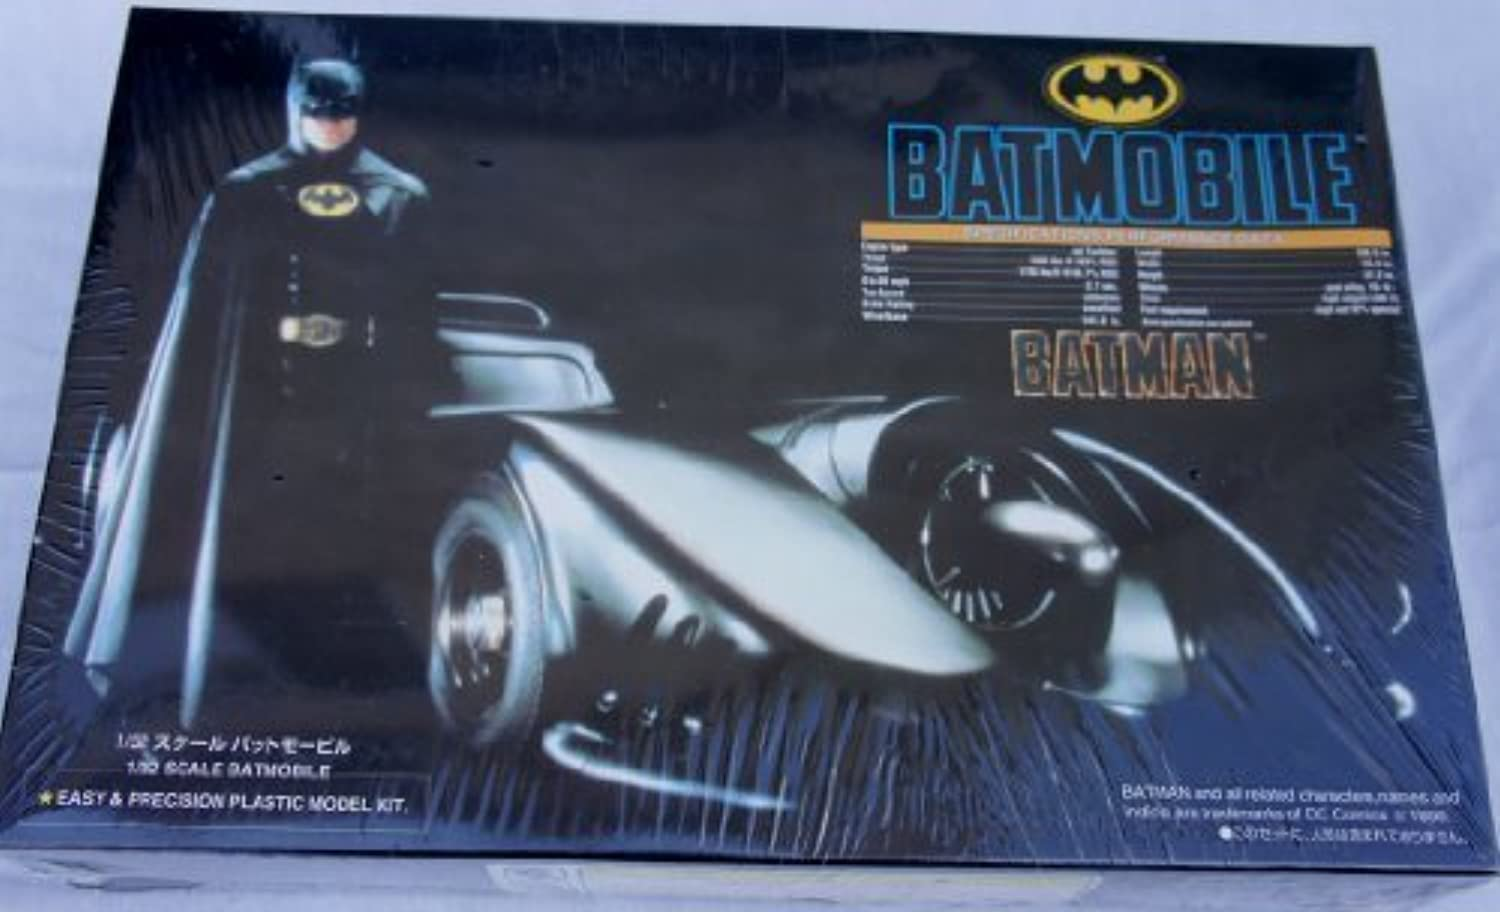 Batmobile 1 32 Scale Batmobile Plastic Model Kit by Batmobile 1 32 plastic model kit